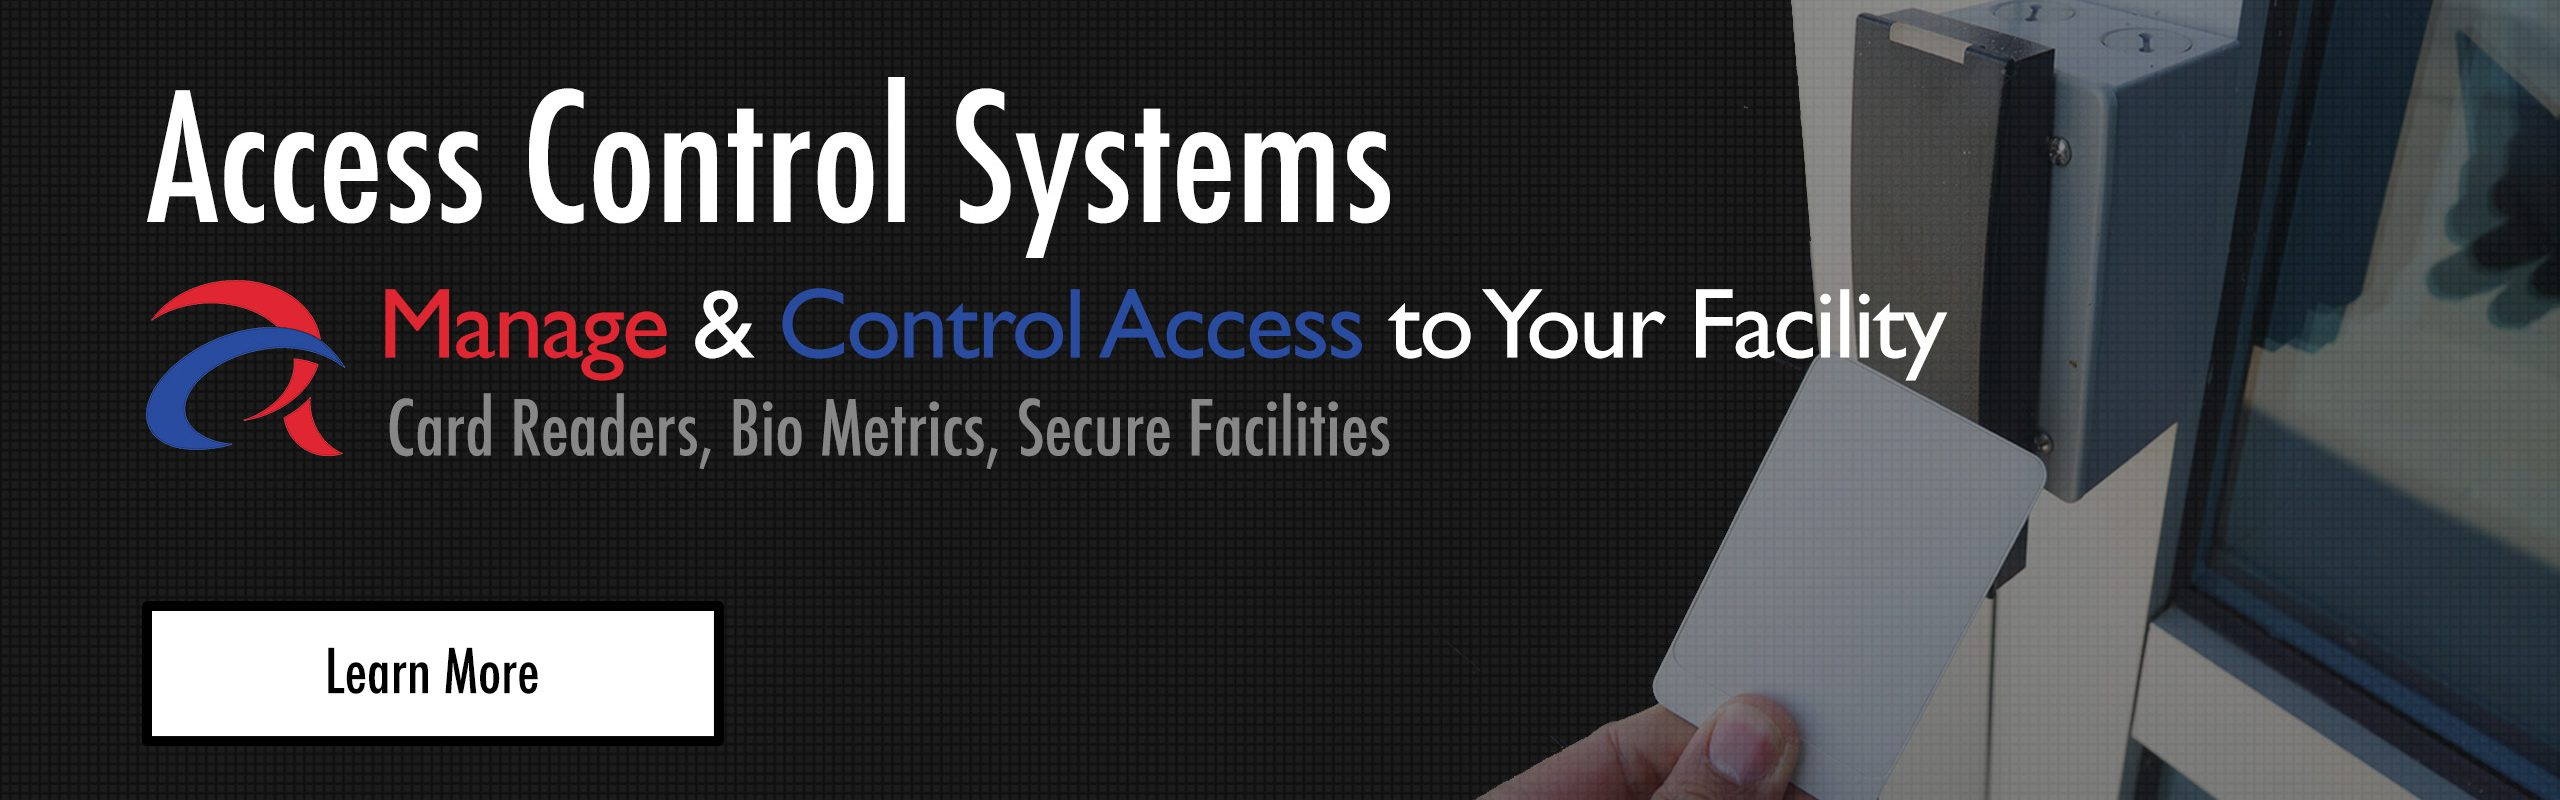 https://allcommtech.com/wp-content/uploads/2018/10/AccessControl-2560x800.jpg